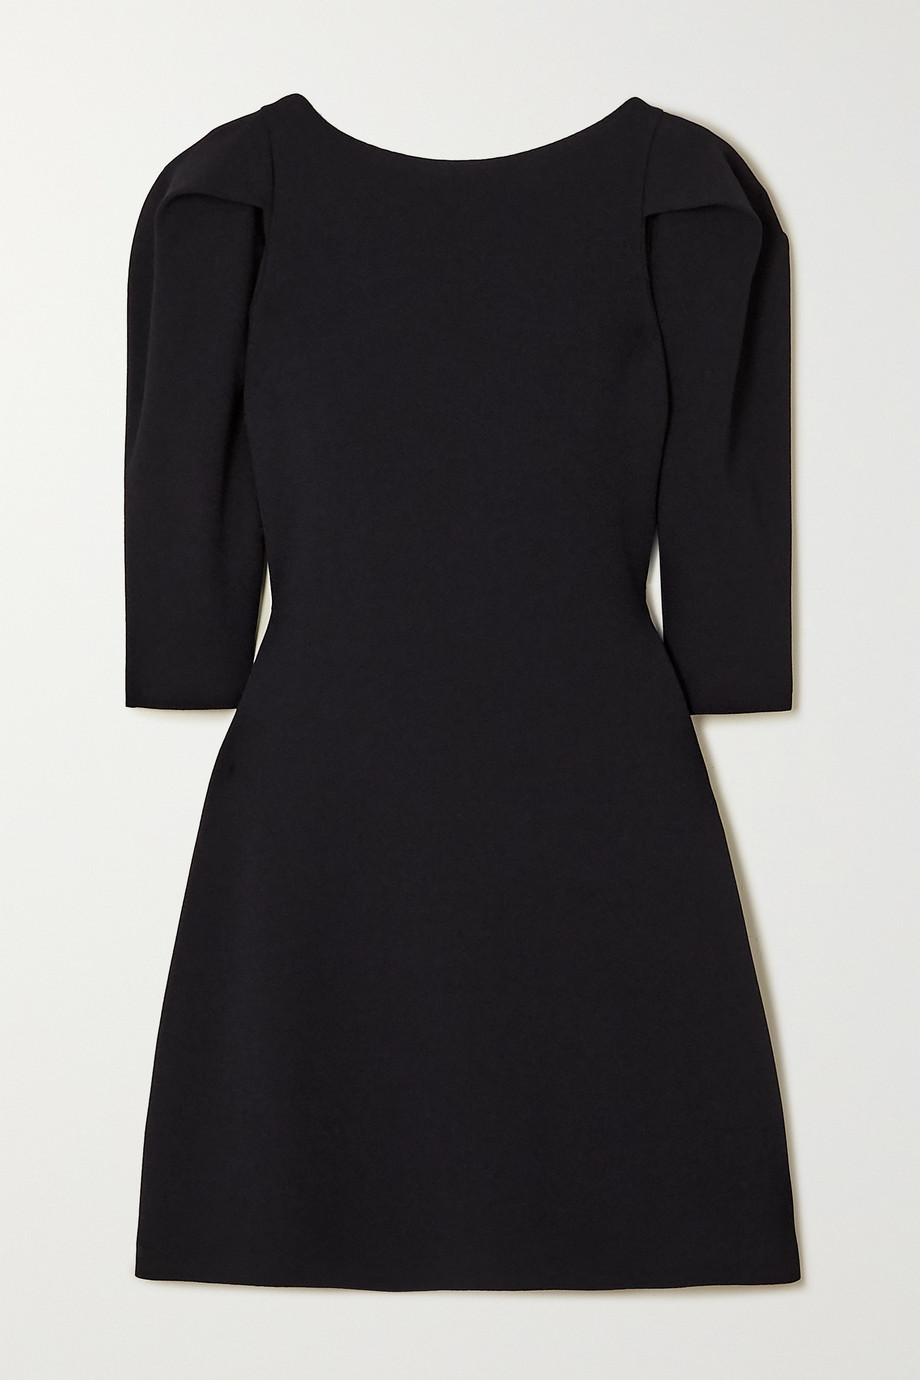 Stella McCartney Pleated stretch-knit mini dress